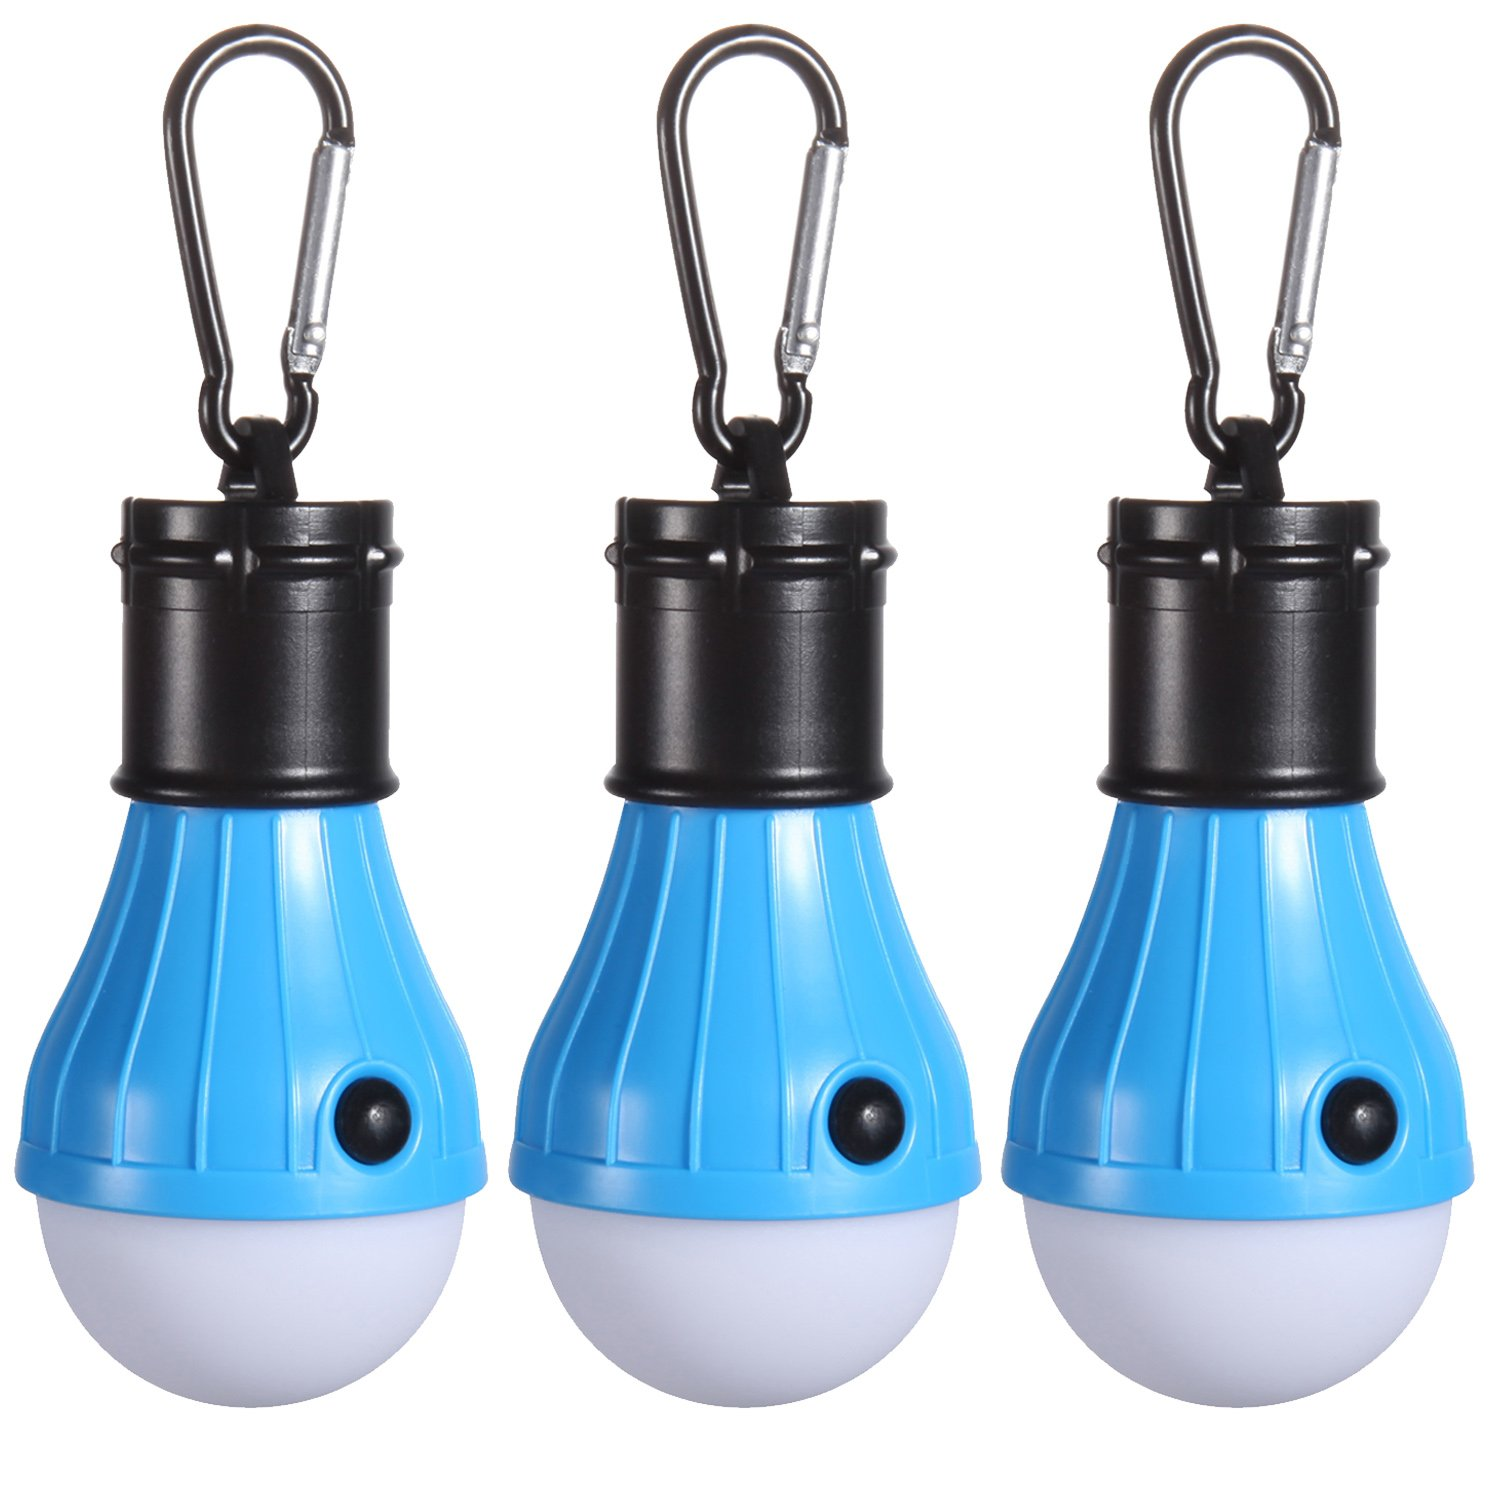 Peyou Led Tent Lamp [3 Pack], Portable LED Lantern Tent Light Bulb with Carabiner, for Backpacking, Camping, Hiking, Riding, Fishing, Outdoors & Indoors Emergency Lighting Gear [Battery Powered]